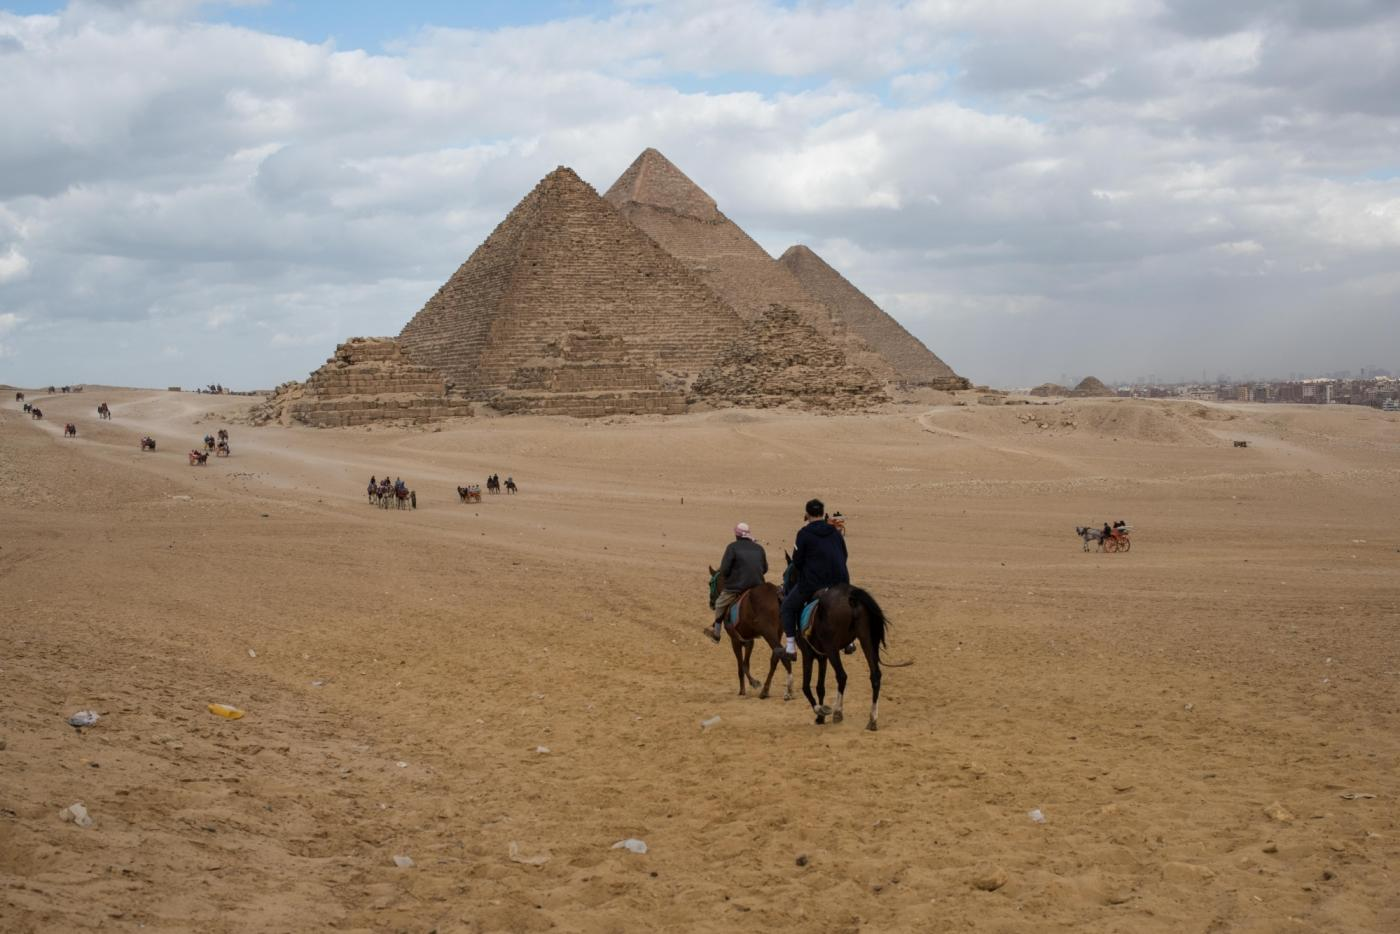 GIZA (EGYPT), Dec. 26, 2018 (Xinhua) -- Photo taken on Dec. 26, 2018 shows a view of the three Great Pyramids in Giza, Egypt. (Xinhua/Meng Tao/IANS) by .